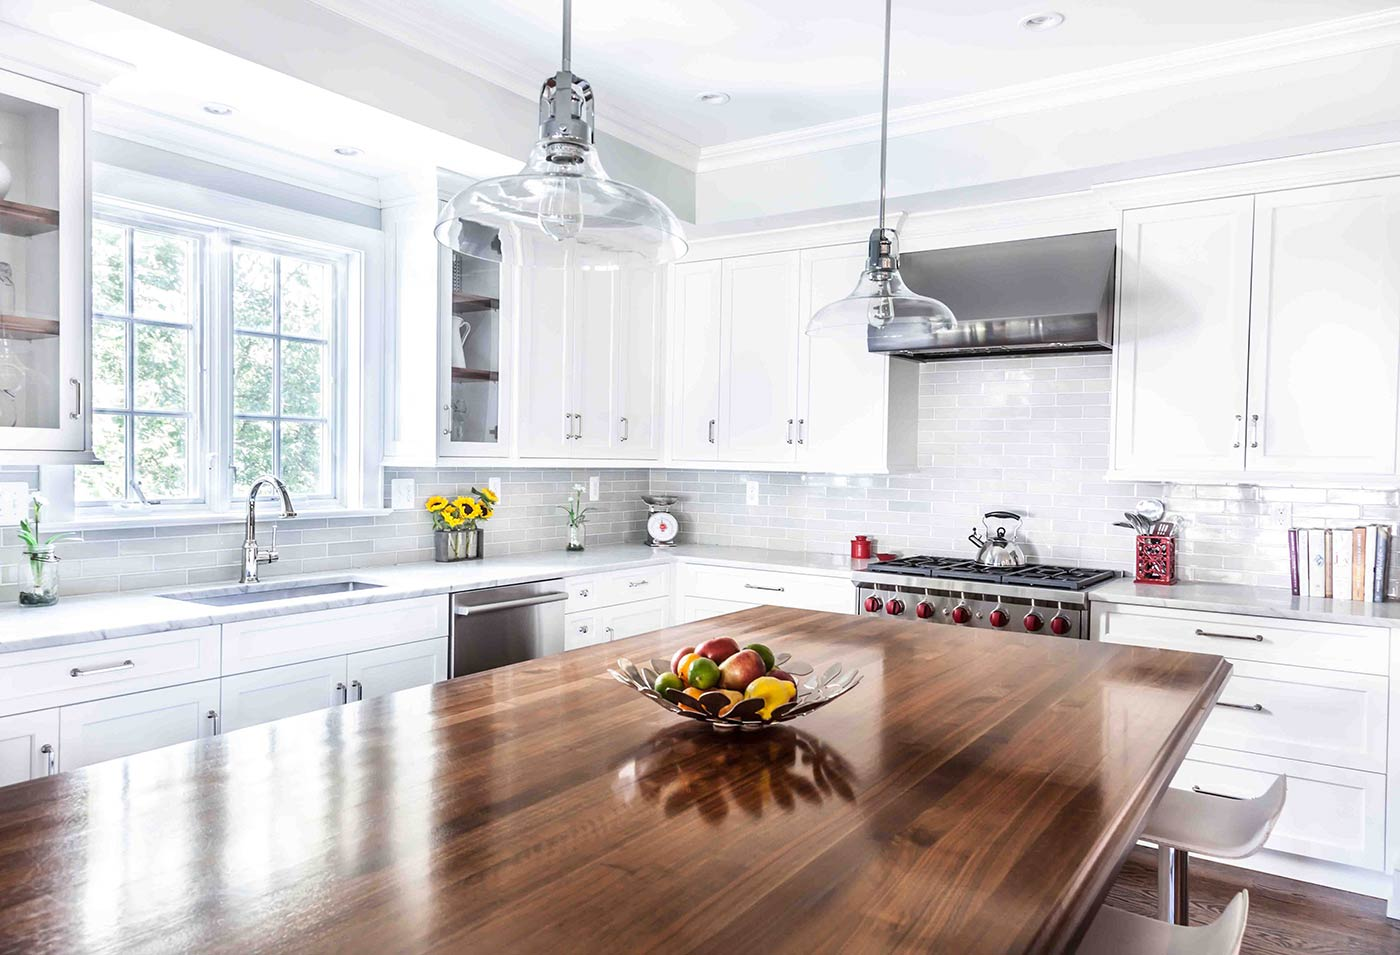 Wood Finish for Custom Wood Countertops in Kitchens and Bathrooms